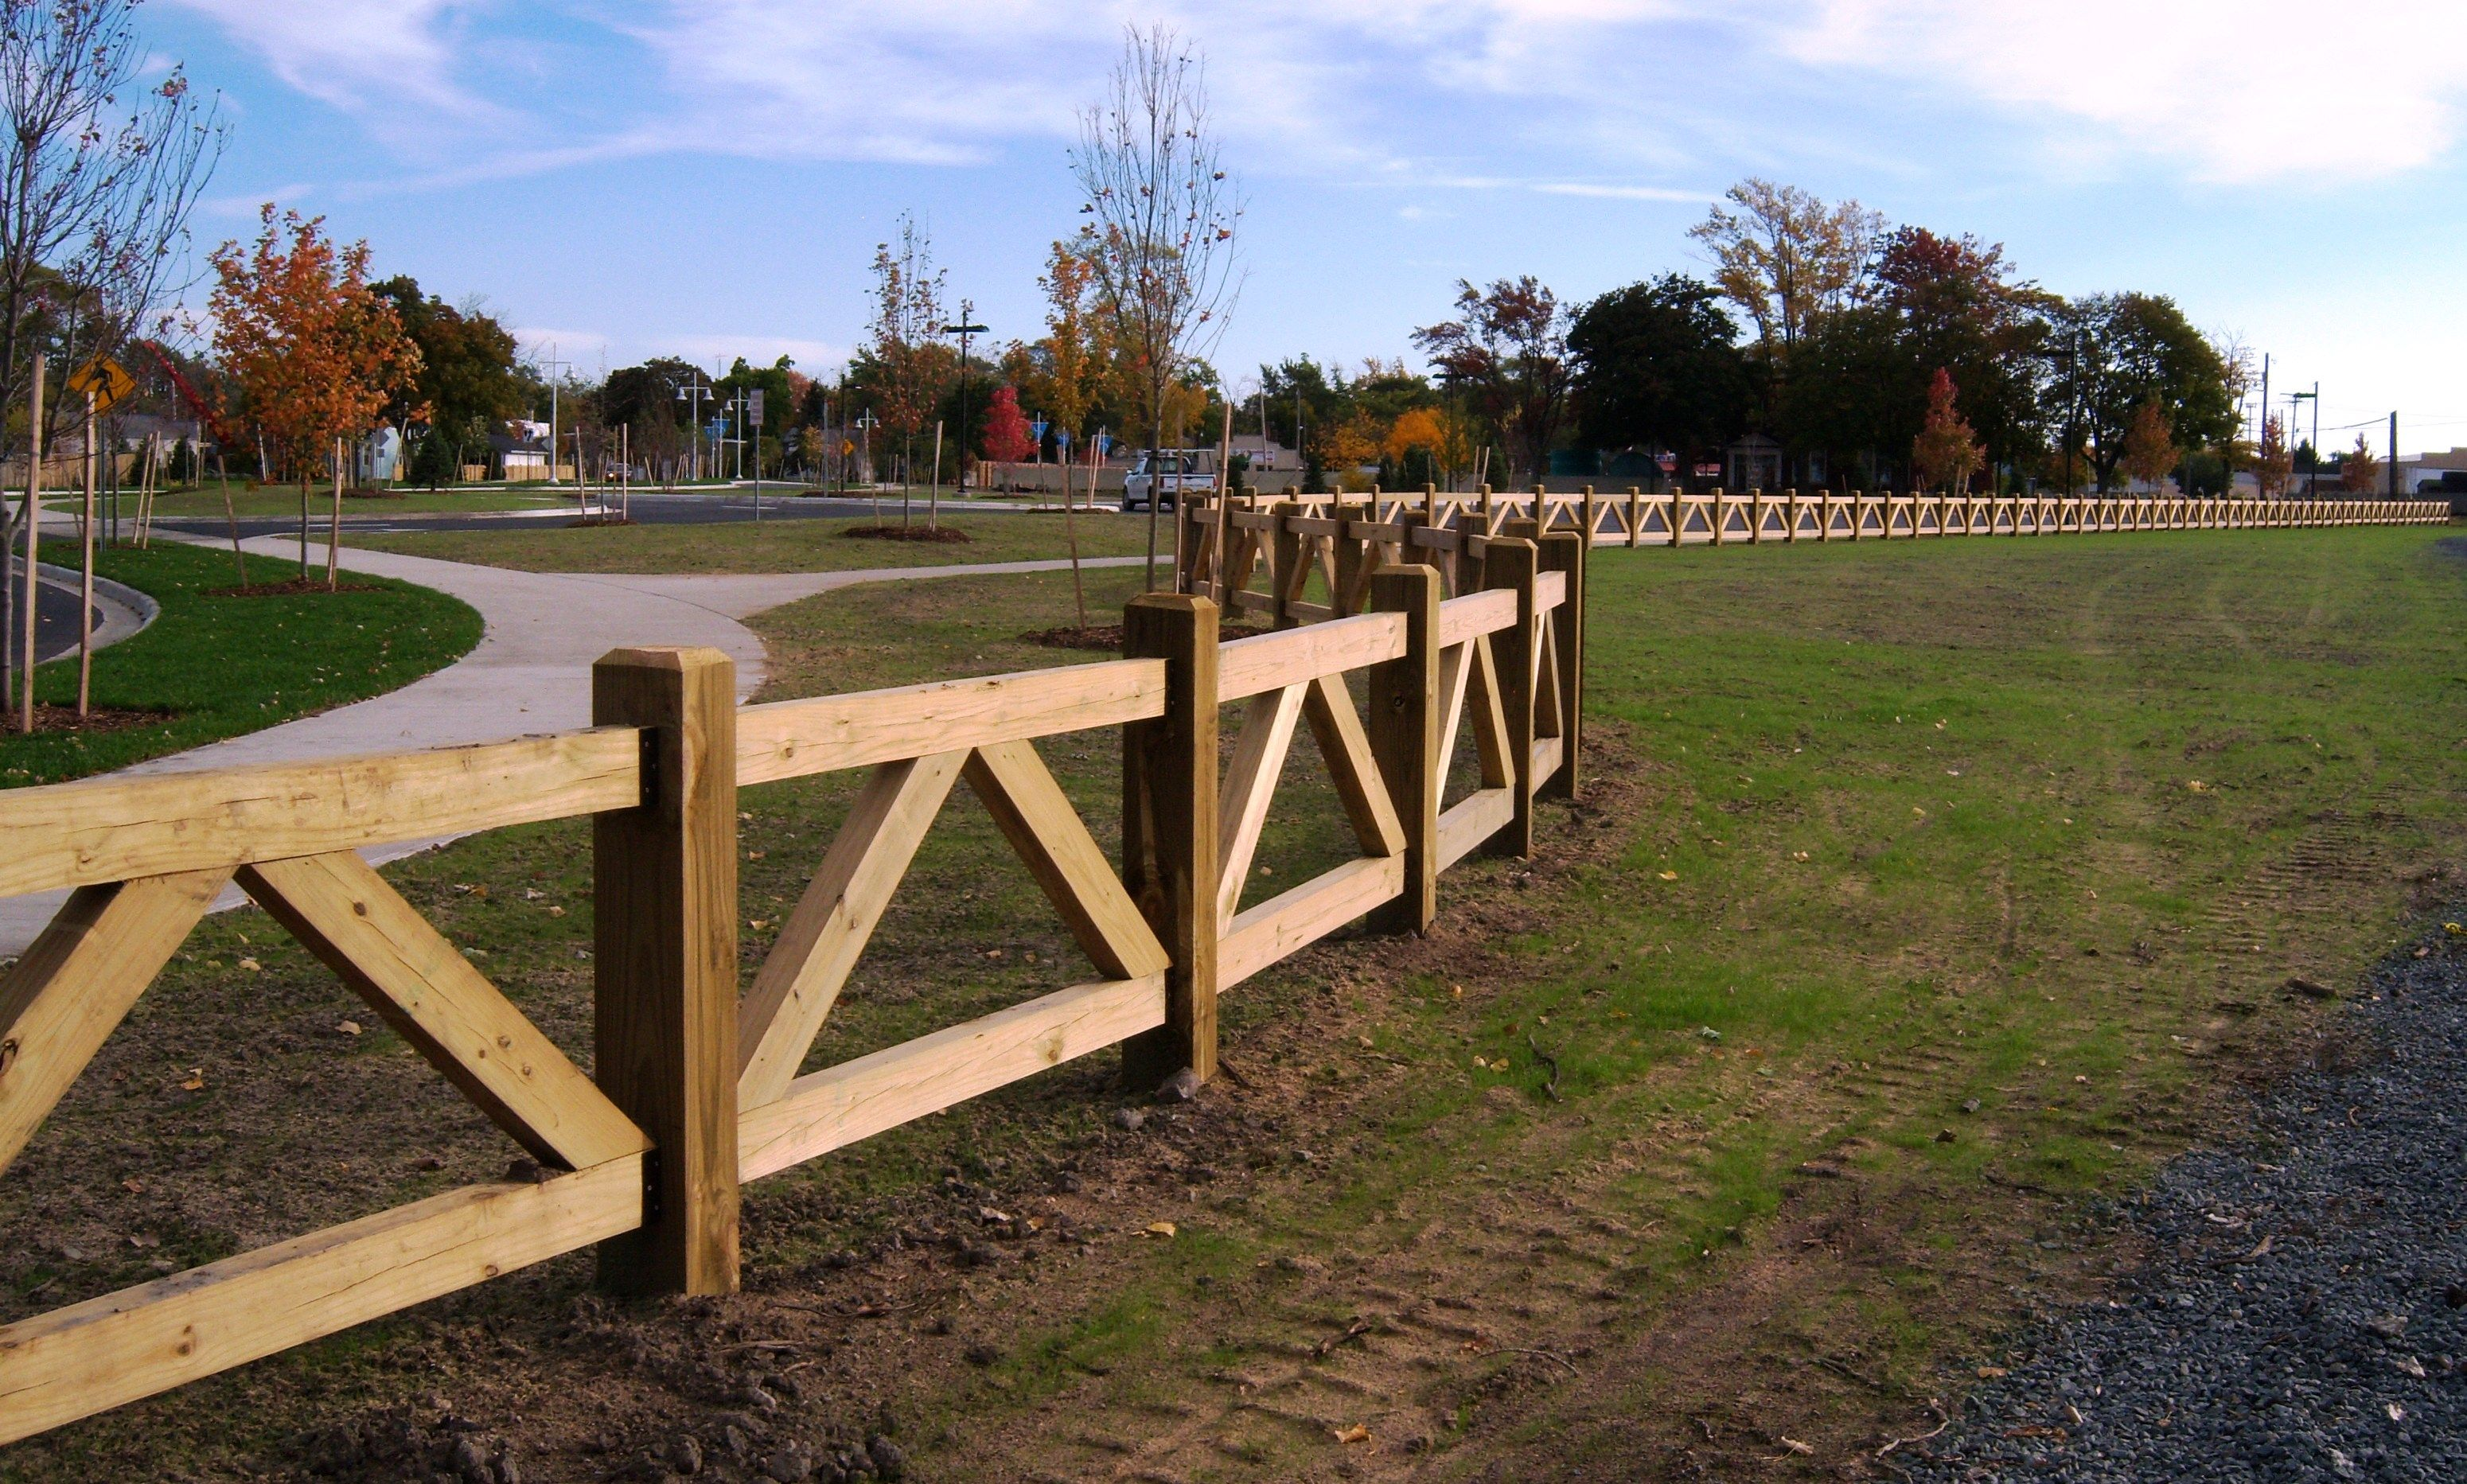 custom wood farm fence around park | Gardening & Back Yard Ideas ...